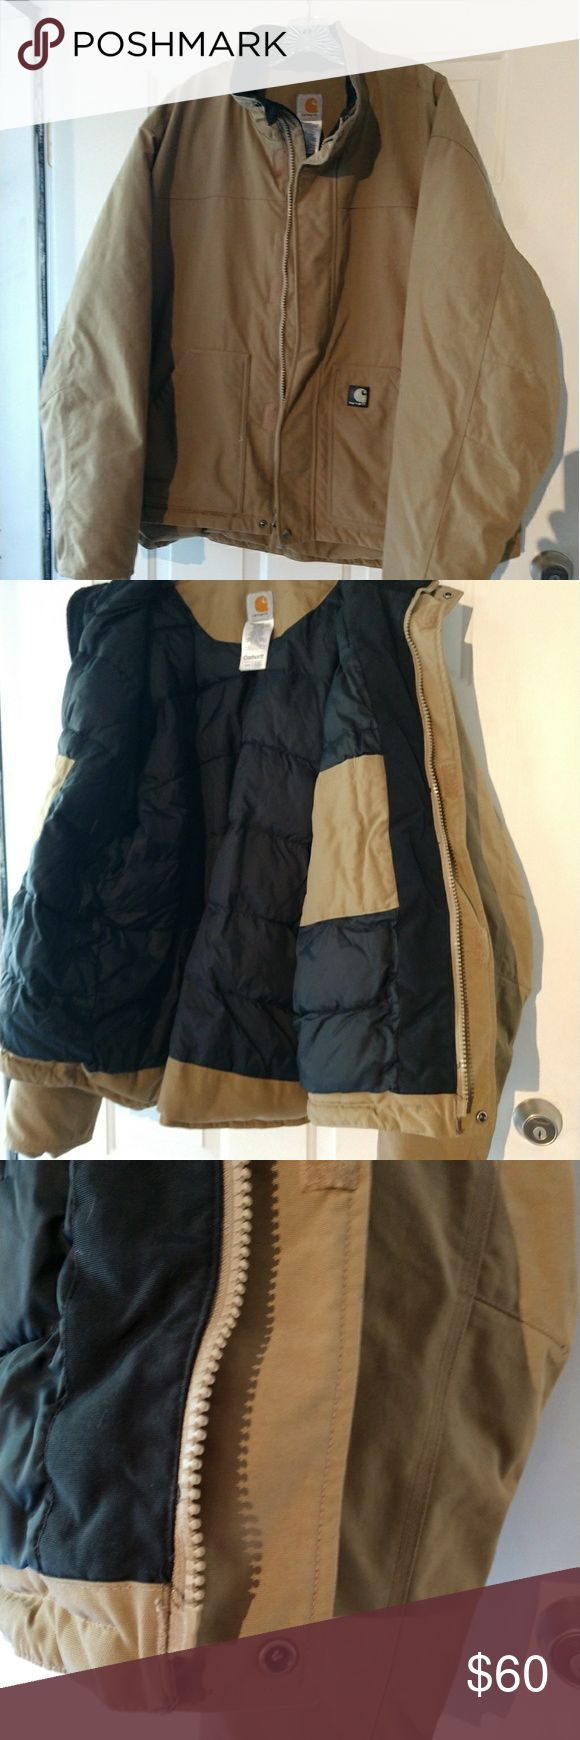 Carhartt Jacket This jacket is in very good used condition. Gently used condition. Perfect for Winter. Very warm. Not a light jacket. Carhartt Jackets & Coats